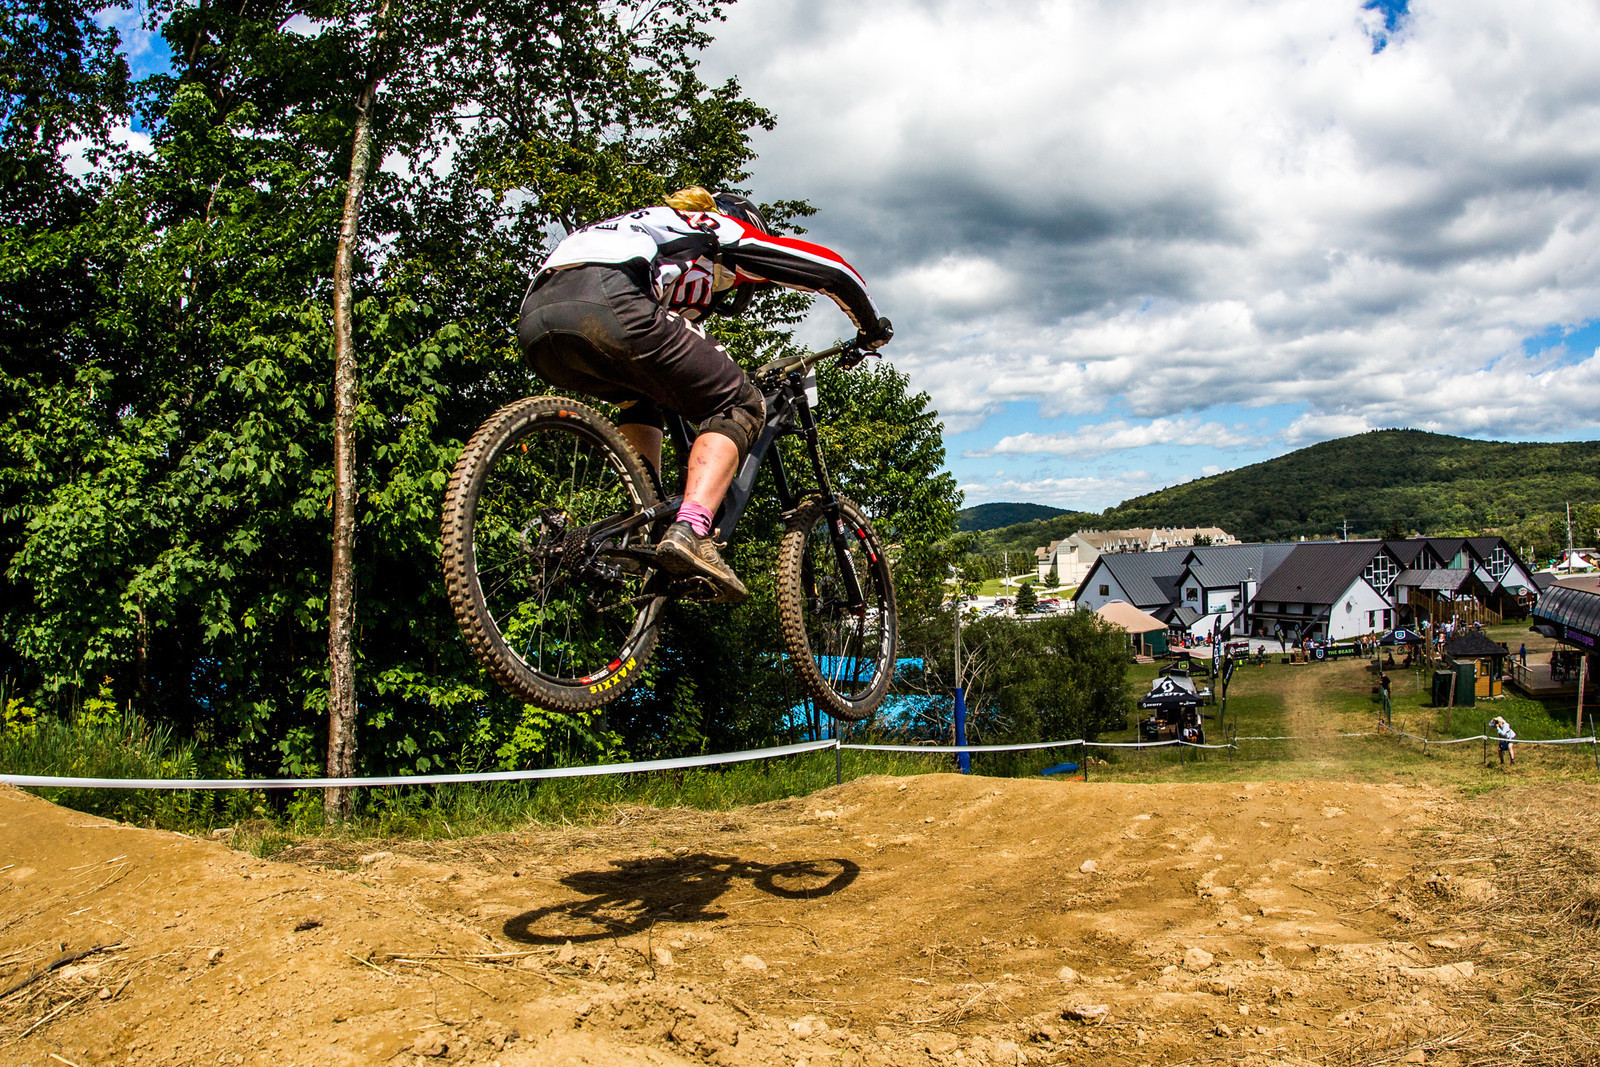 U.S. Junior ripper, Mayzie Hayden, in 2nd place, not too far off the pace! Her she is on her way to winning the Killington Pro GRT last weekend.